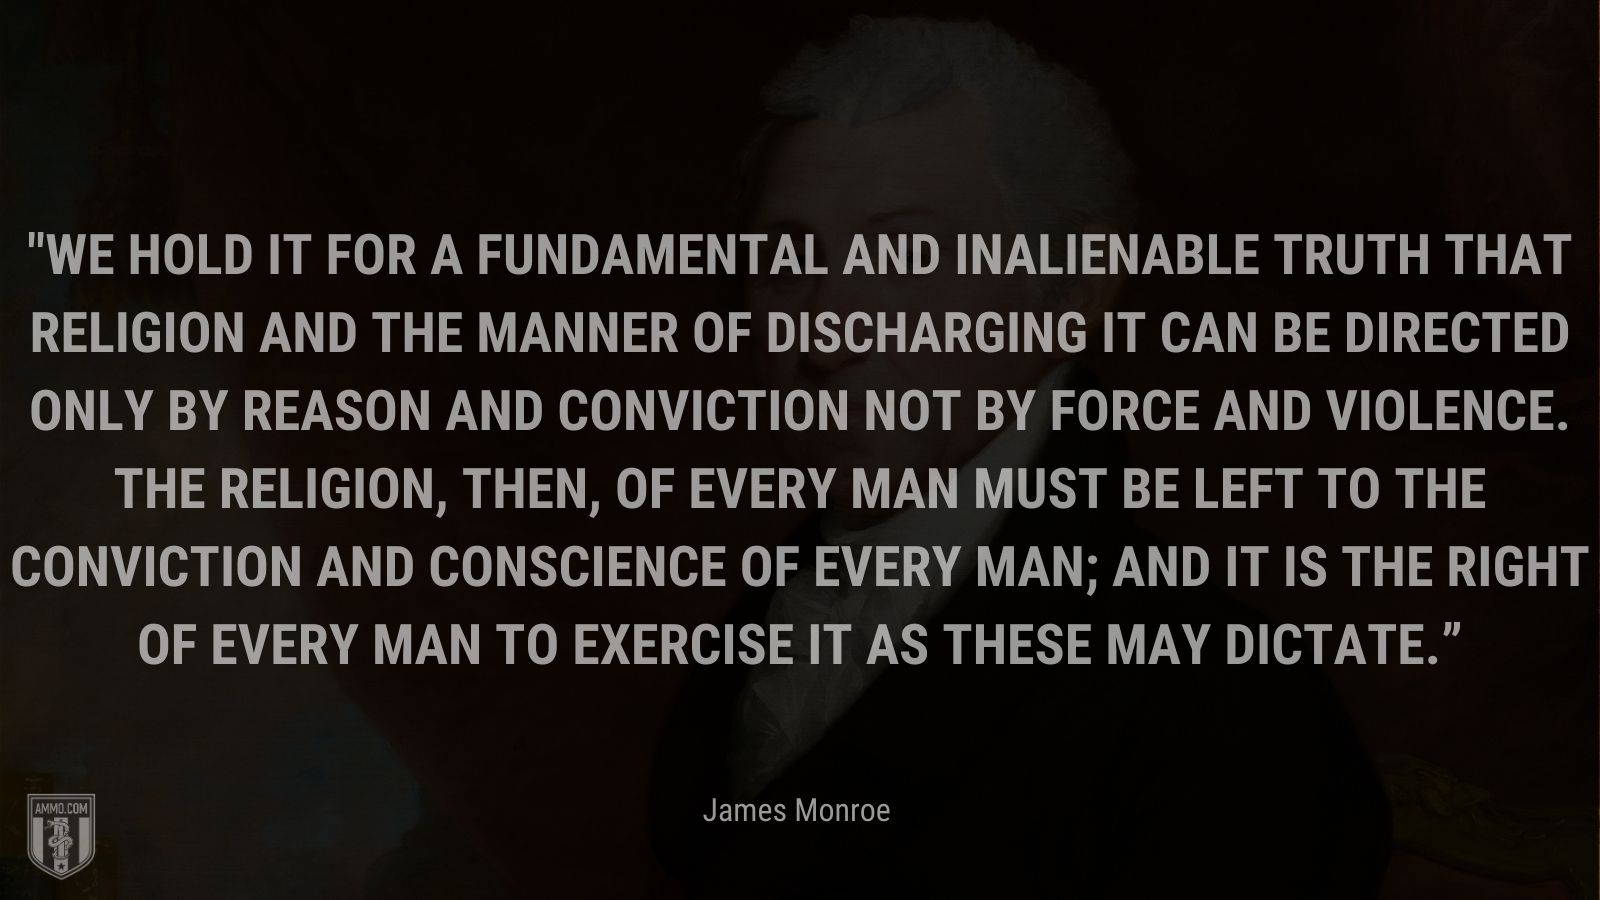 """""""We hold it for a fundamental and inalienable truth that religion and the manner of discharging it can be directed only by reason and conviction not by force and violence. The religion, then, of every man must be left to the conviction and conscience of every man; and it is the right of every man to exercise it as these may dictate."""" -James Monroe"""